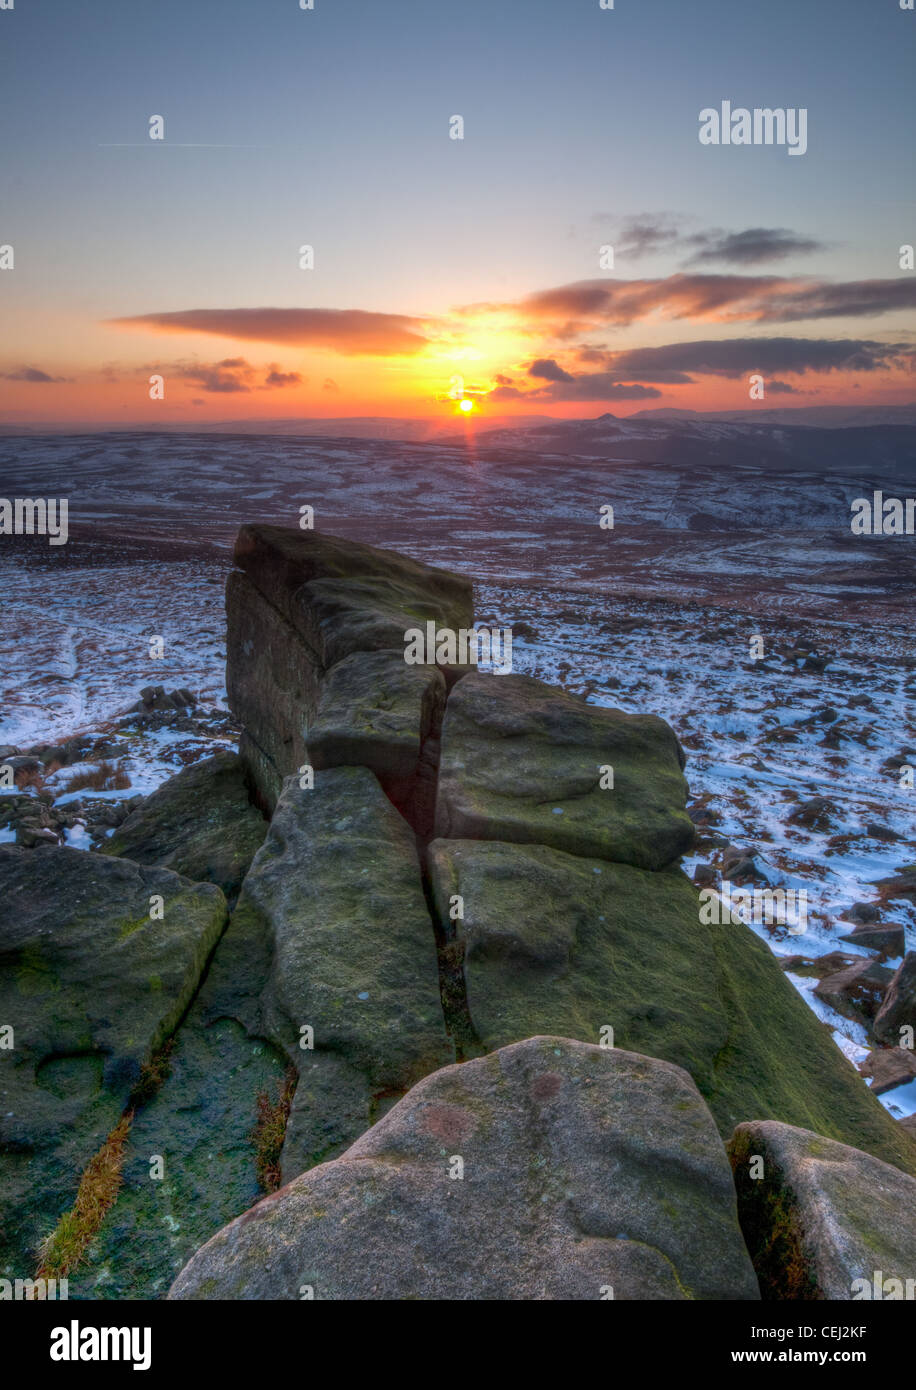 Sunset over a snowy landscape.  A rocky outcrop extends from the viewers feet to toward the sun setting just above - Stock Image